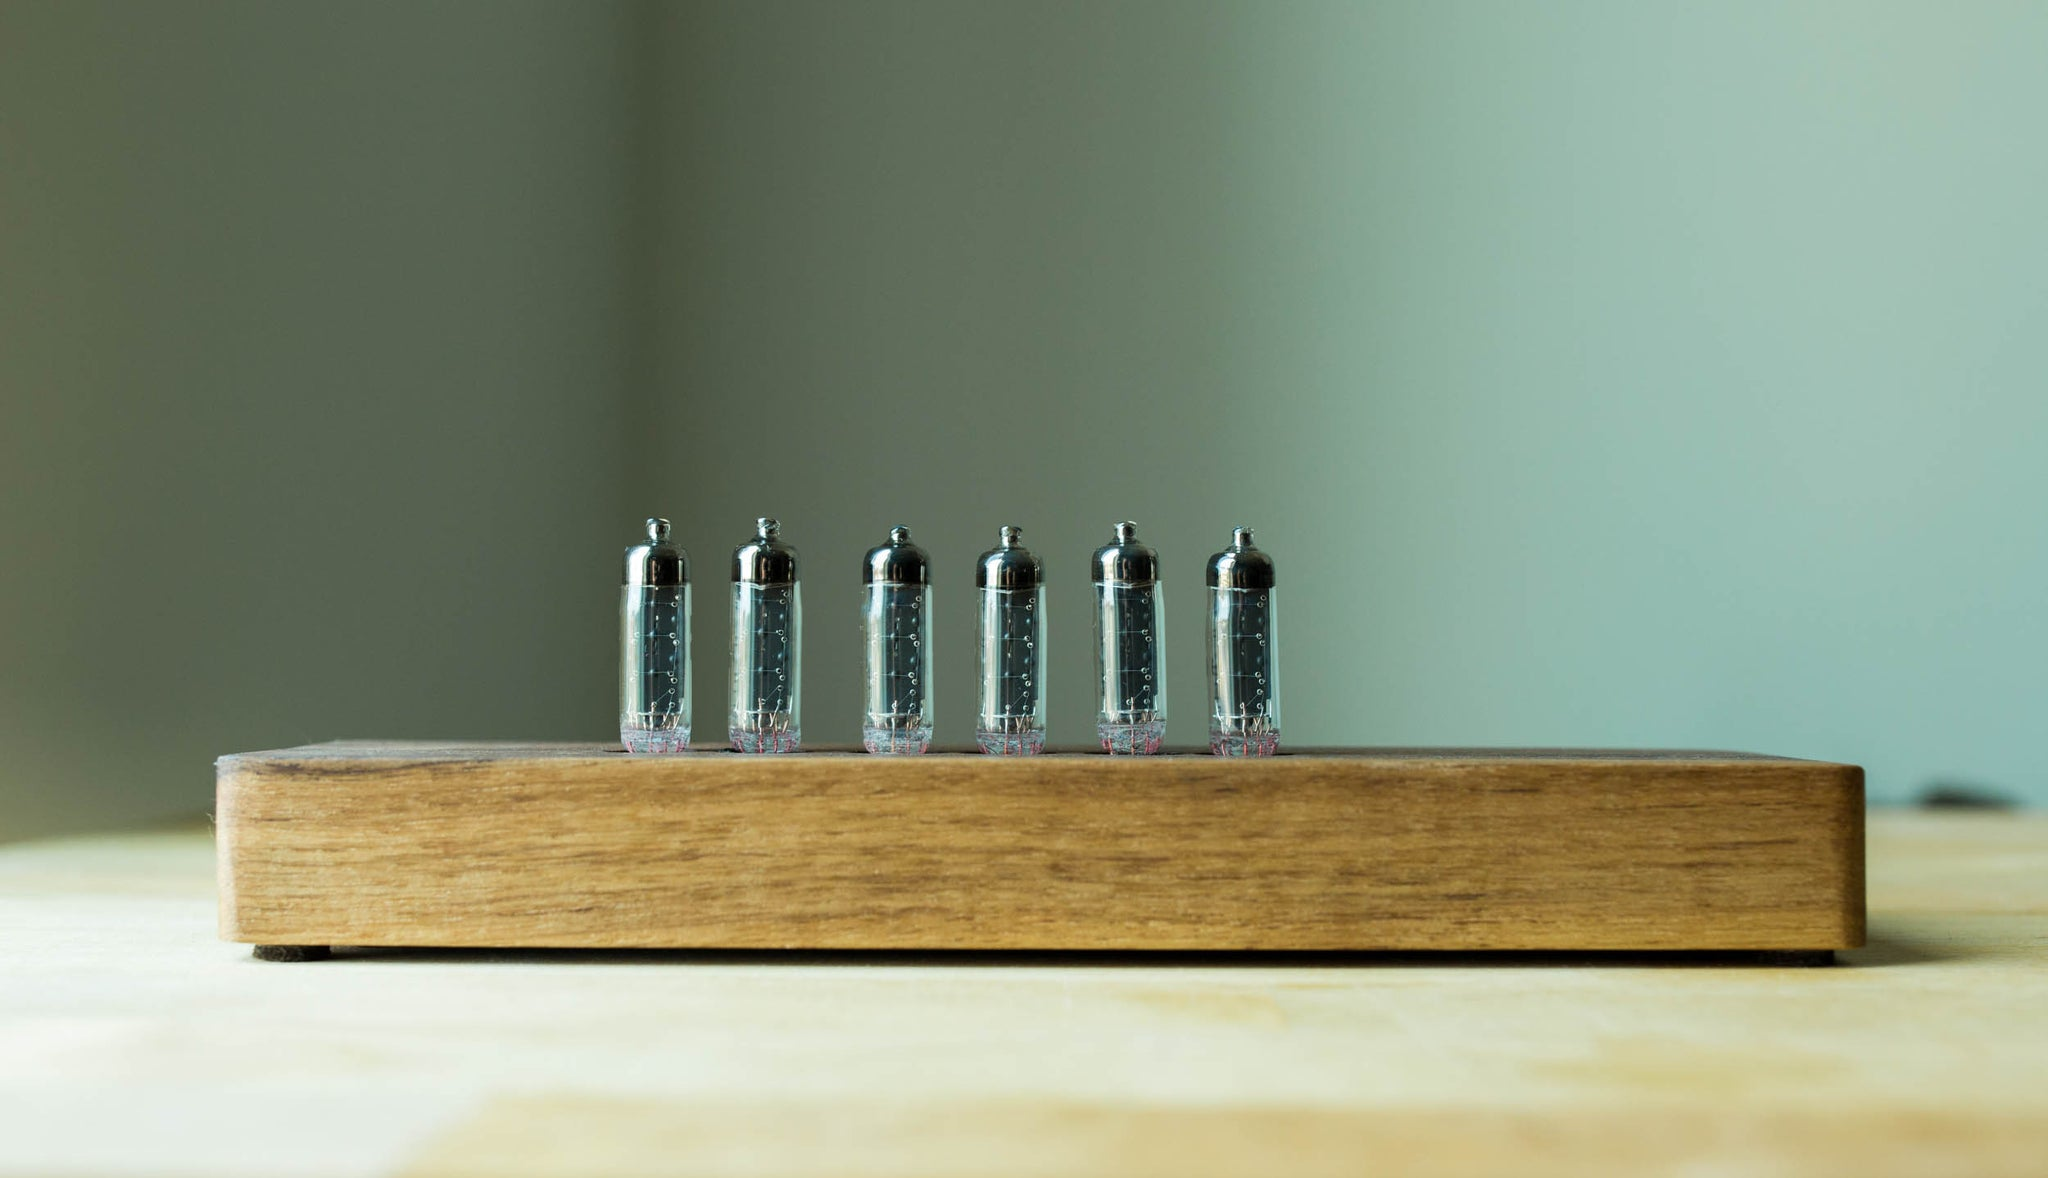 Russian Numitron Nixie Tube Clock - Solid Walnut